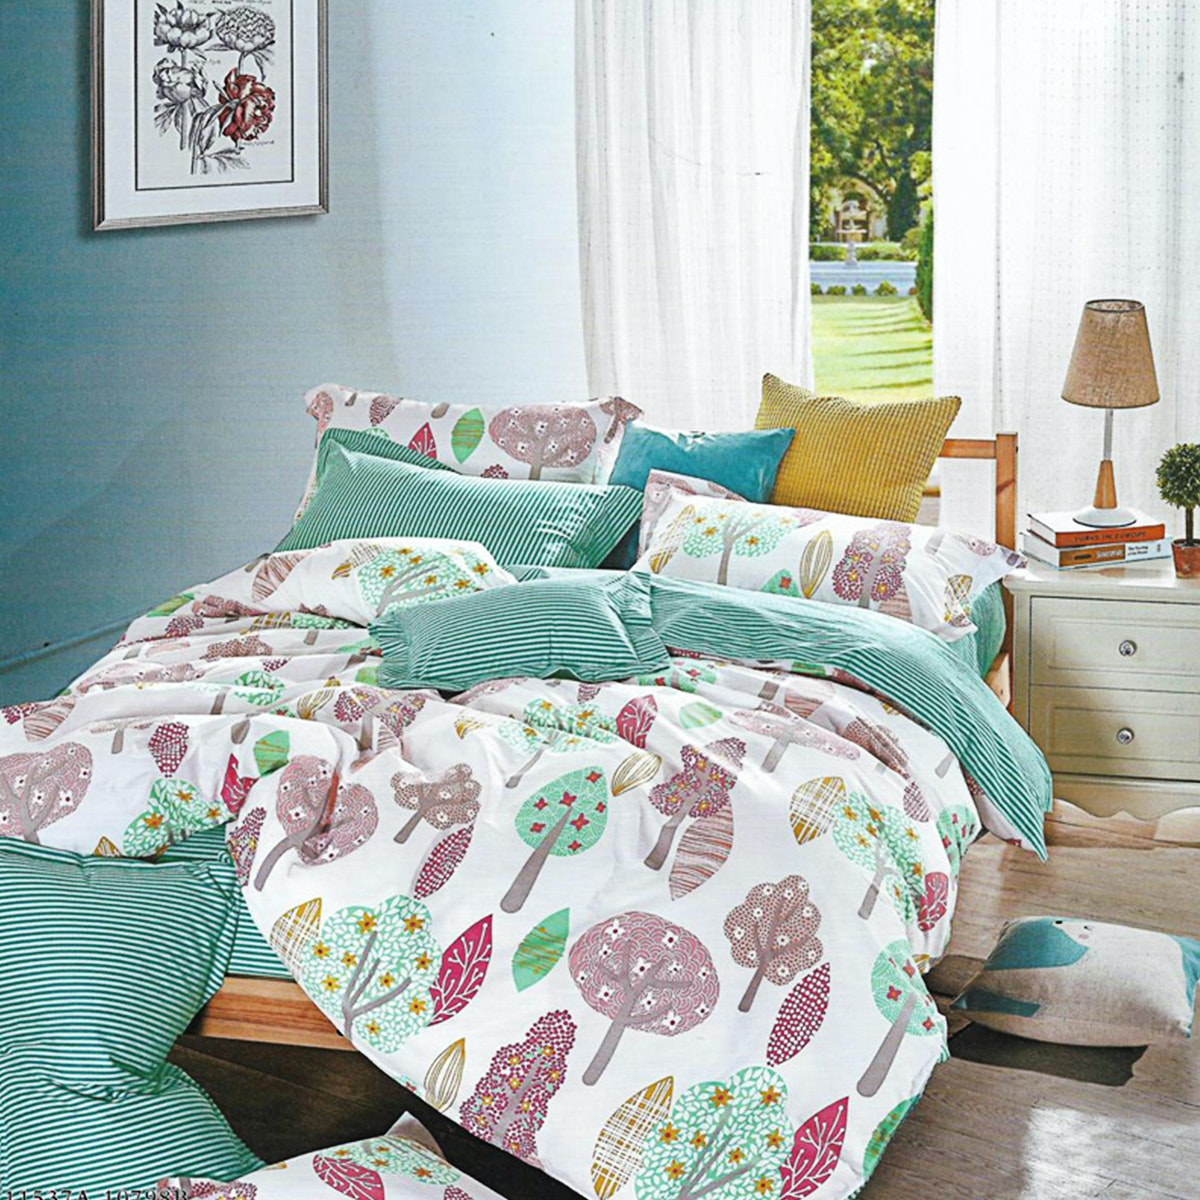 Sleep Buddy Set Sprei Greeny Garden Cotton Sateen 120x200x30